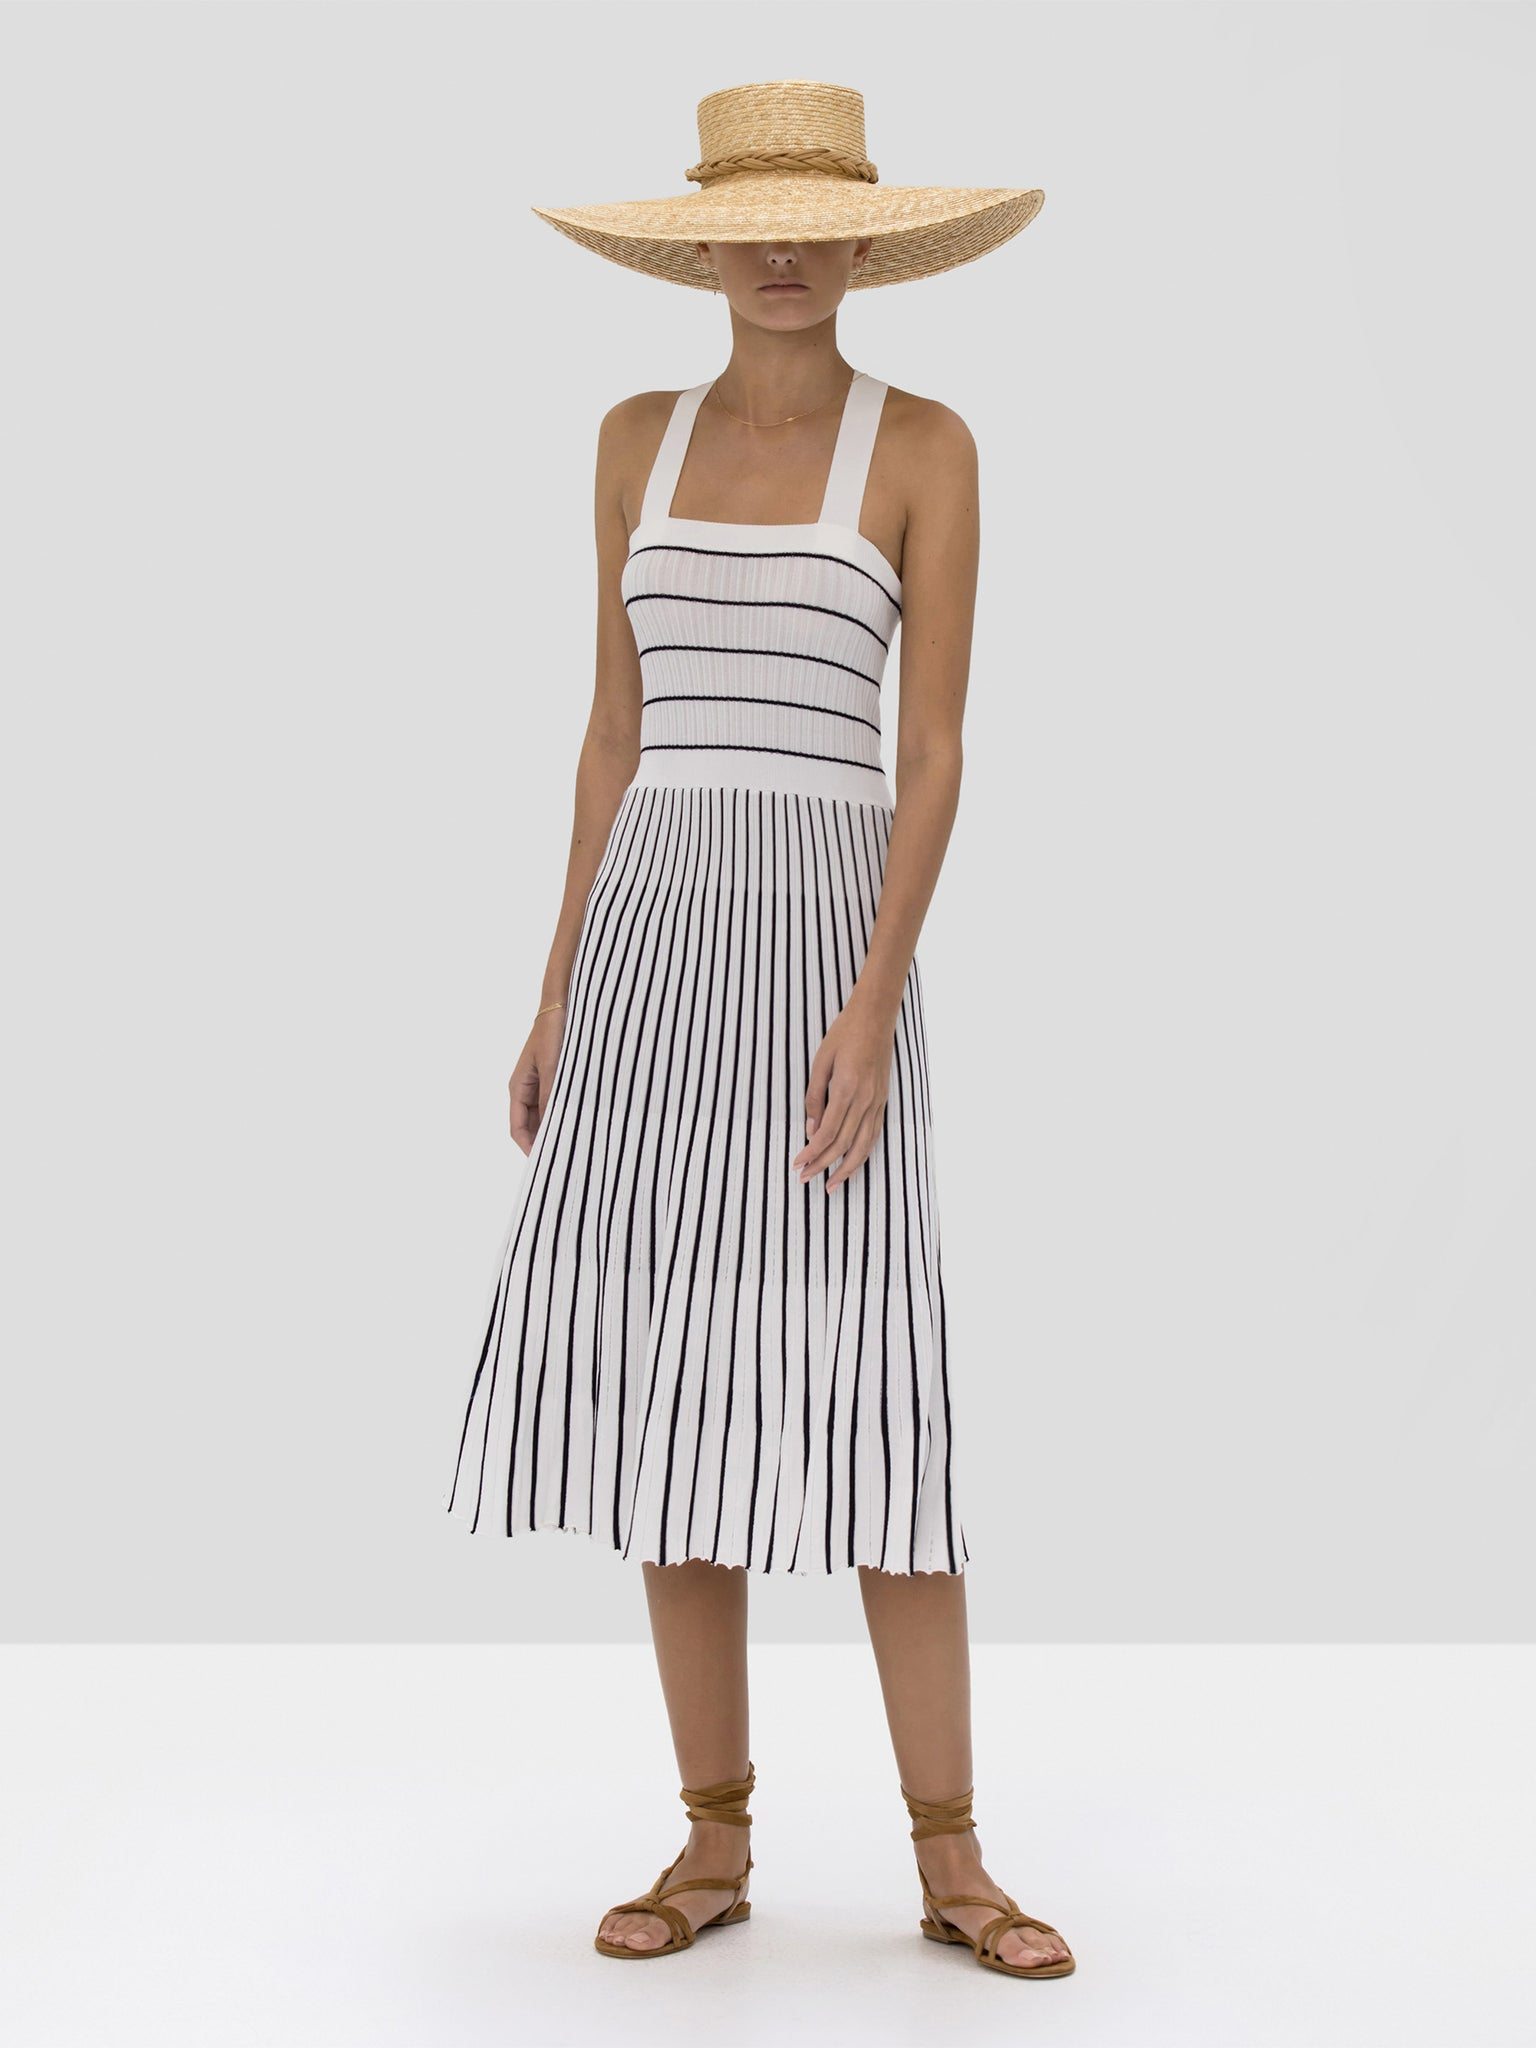 The Bess Dress in Navy White Stripes from the Spring Summer 2020